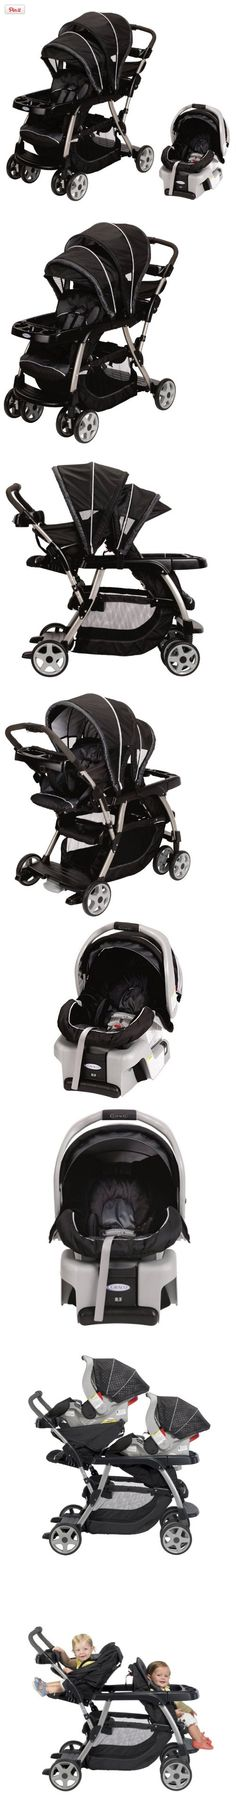 Graco Ready2Grow LX Baby Stoller  SnugRide Car Seat Travel System - Metropolis, Introducing the Graco Ready2Grow Duo Stoller to double the fun of your family adventures! As its name implies, the Ready2Grow stroller is the best choice to get your kids out and about from infancy to..., #Baby, #Travel Systems